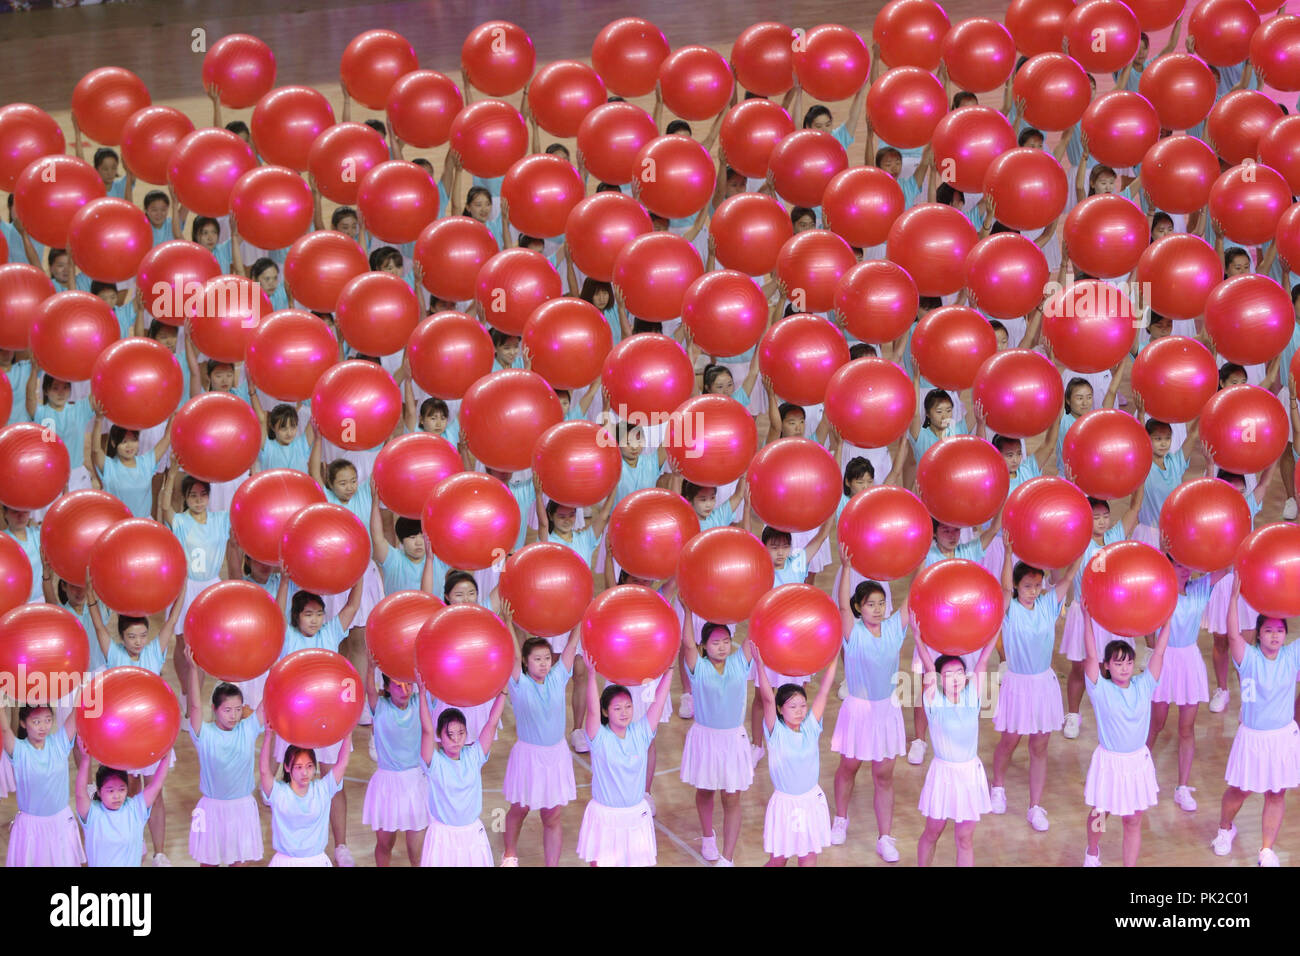 Binzhou, Binzhou, China. 10th Sep, 2018. Binzhou, CHINA-People of ethnic minority groups attend sports meeting in Binzhou, east China's Shandong Province. Credit: SIPA Asia/ZUMA Wire/Alamy Live News - Stock Image